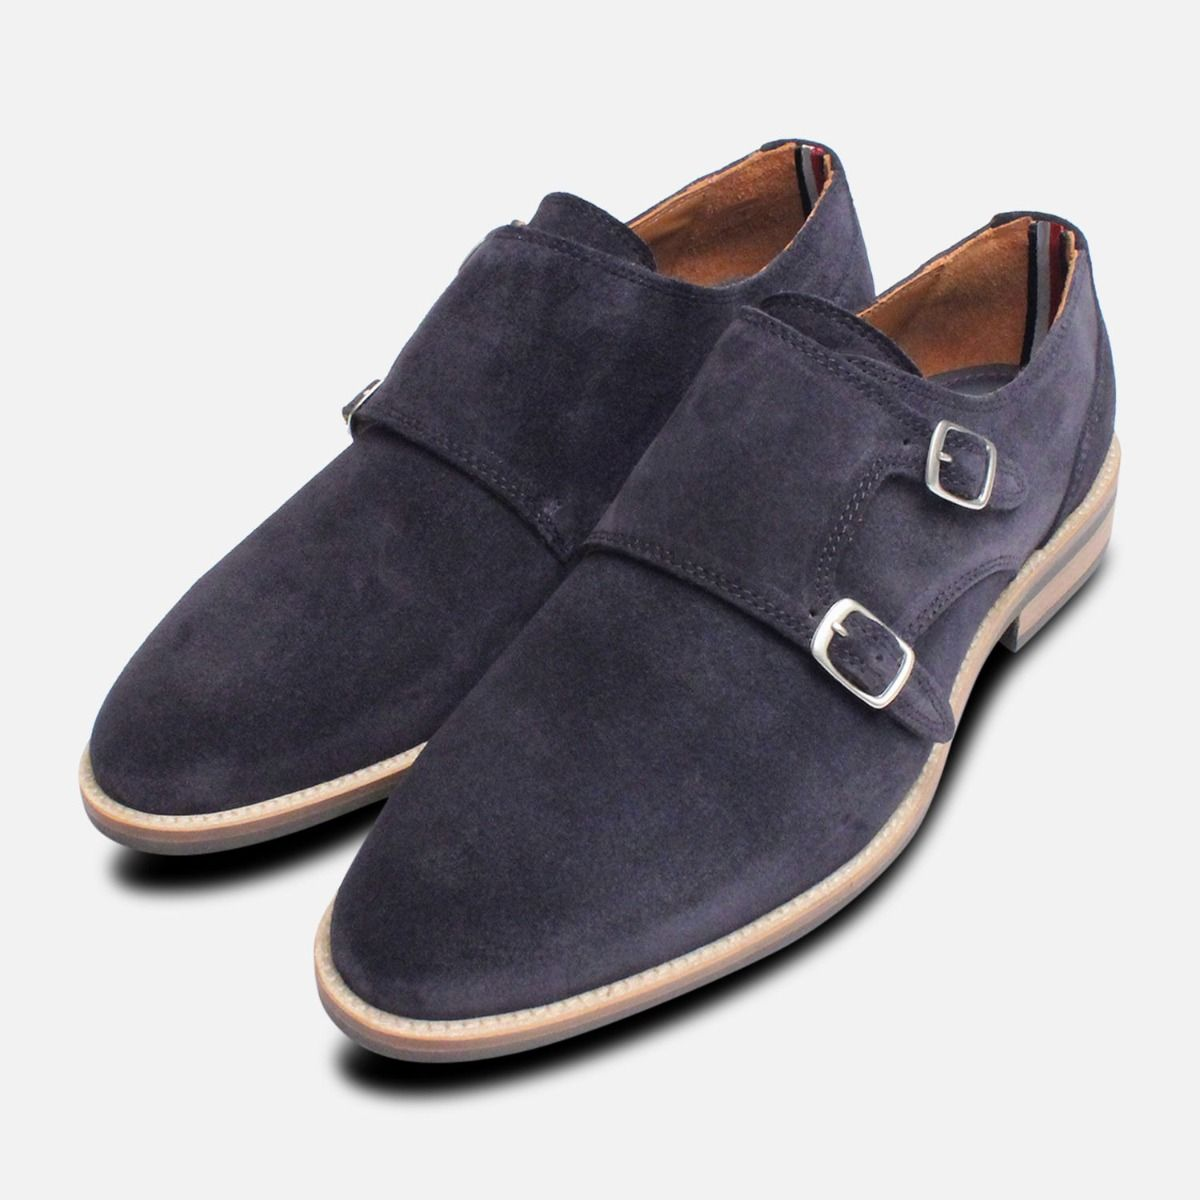 14344e29b772 Monk Strap Tommy Hilfiger Shoes in Navy Blue Suede